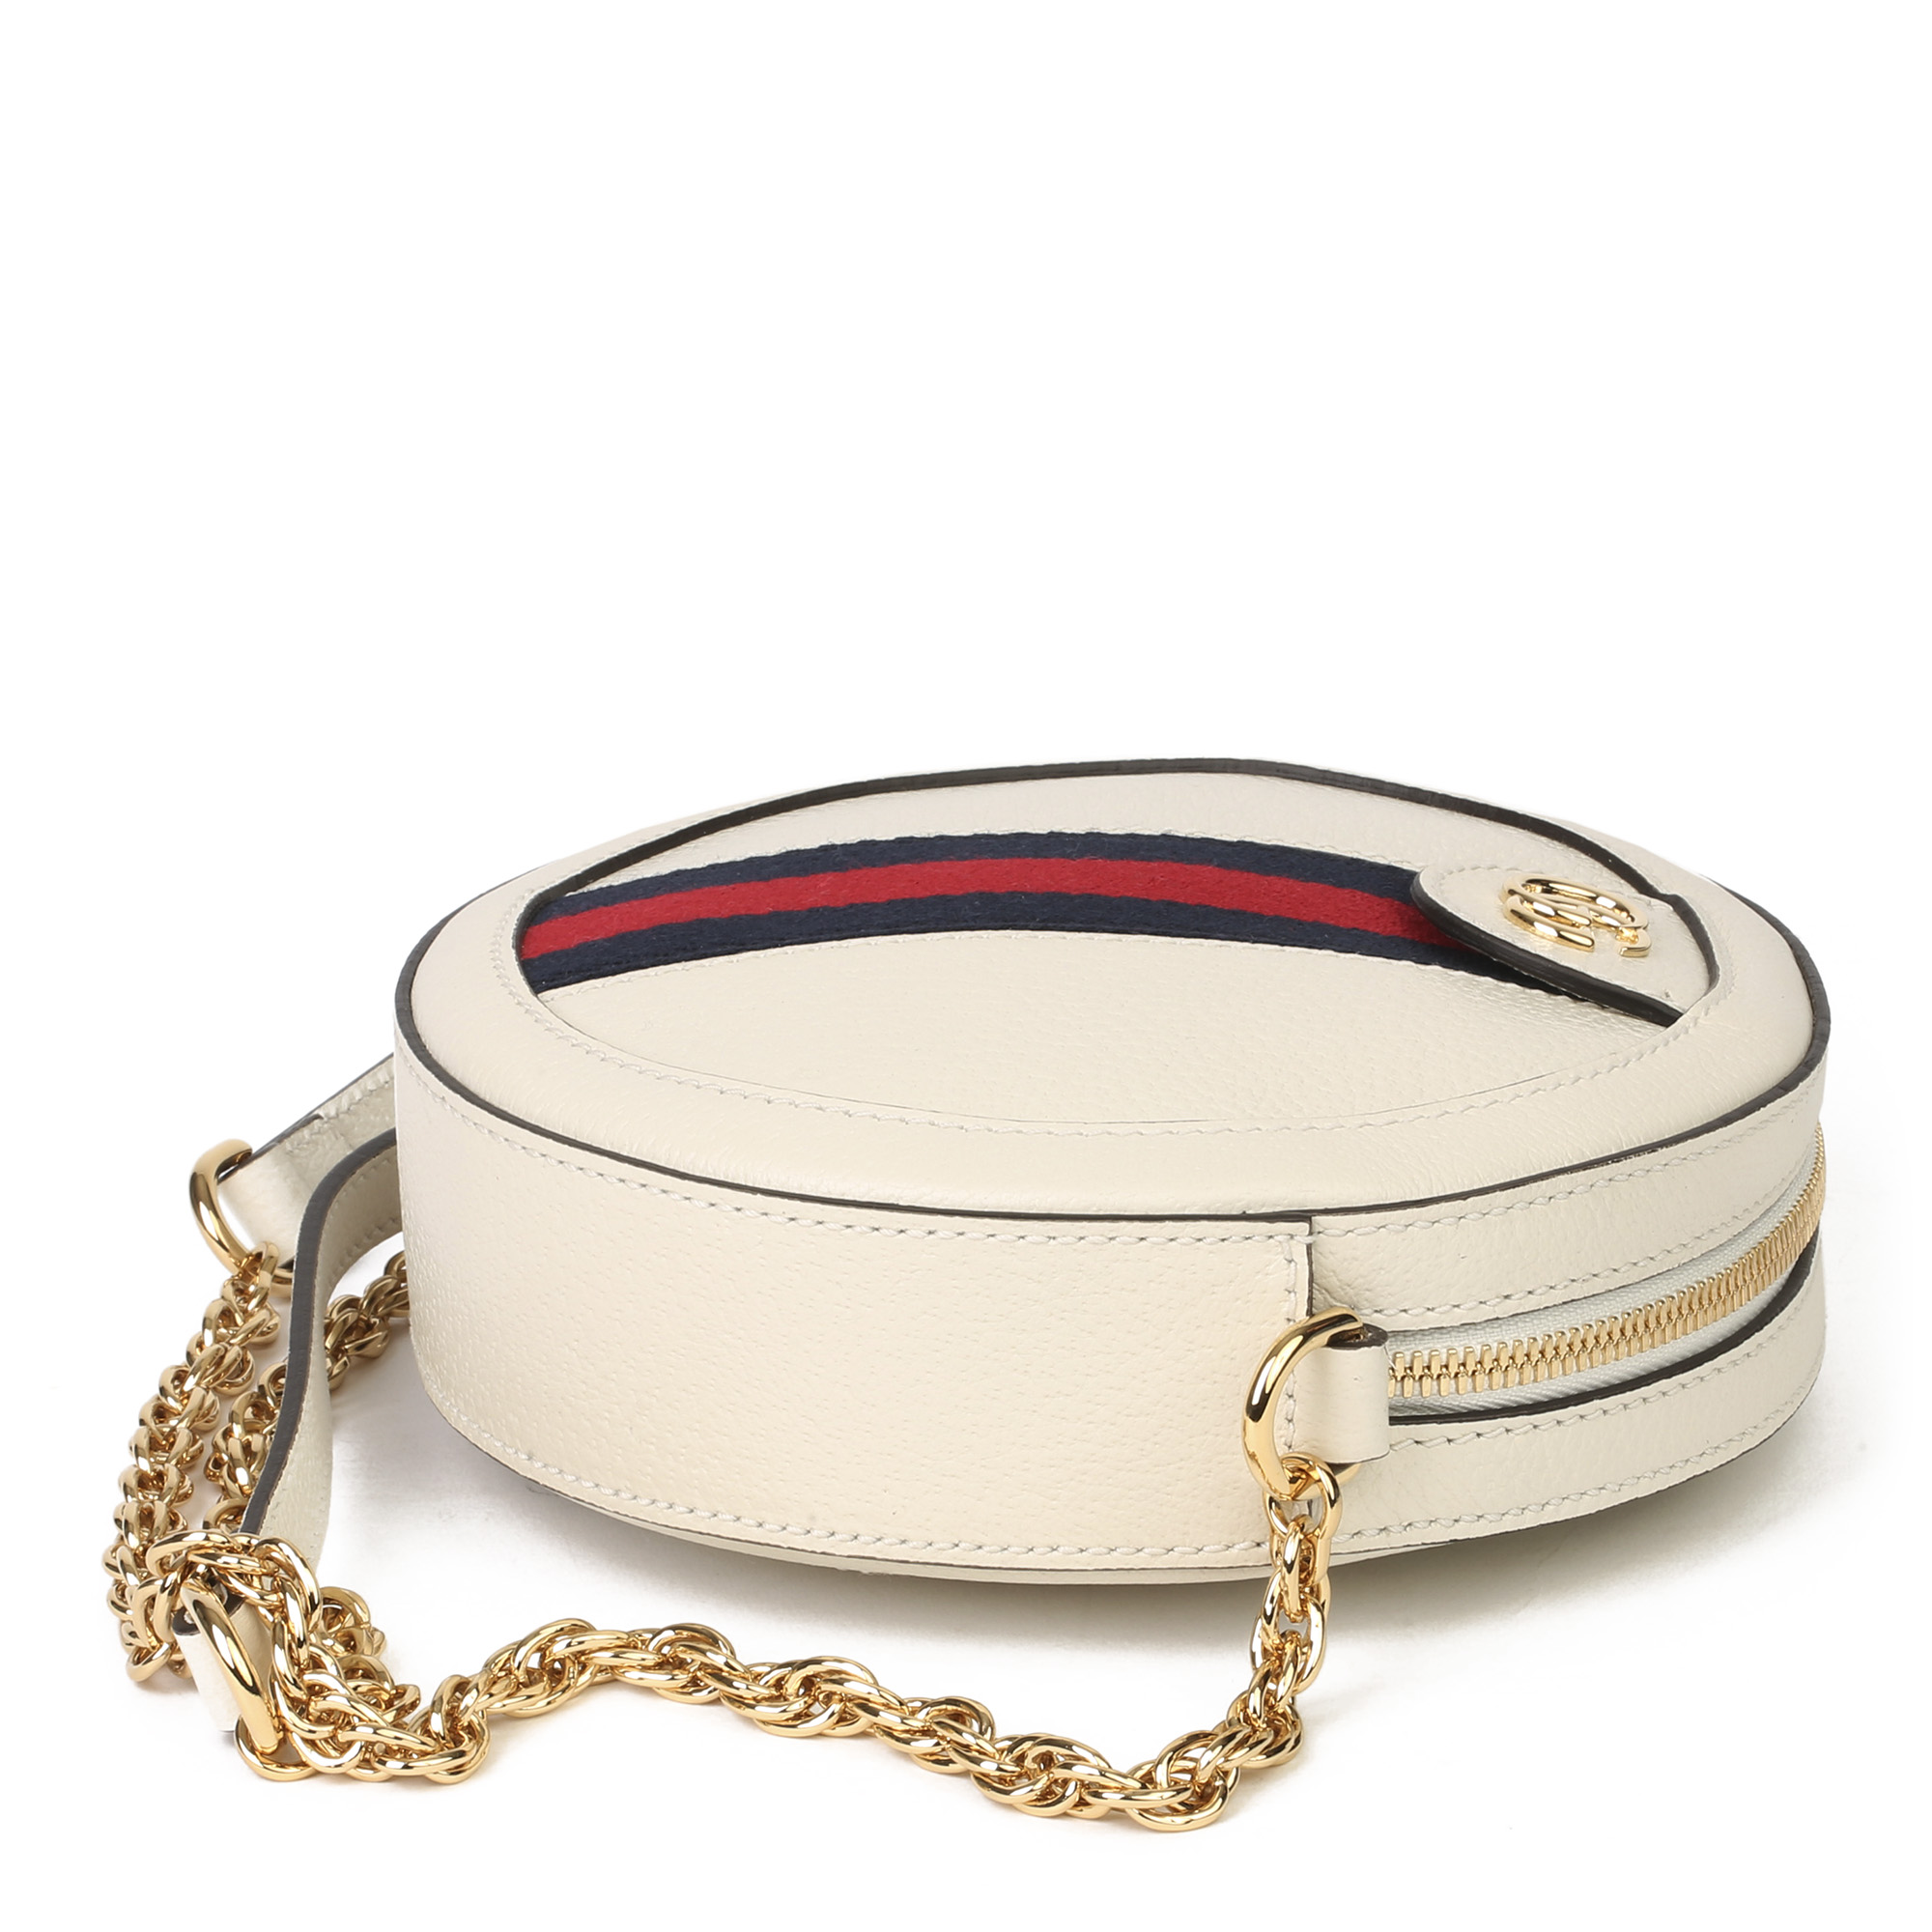 Gucci White Pigskin Leather Web Mini Round Orphidia Shoulder Bag - Image 10 of 11